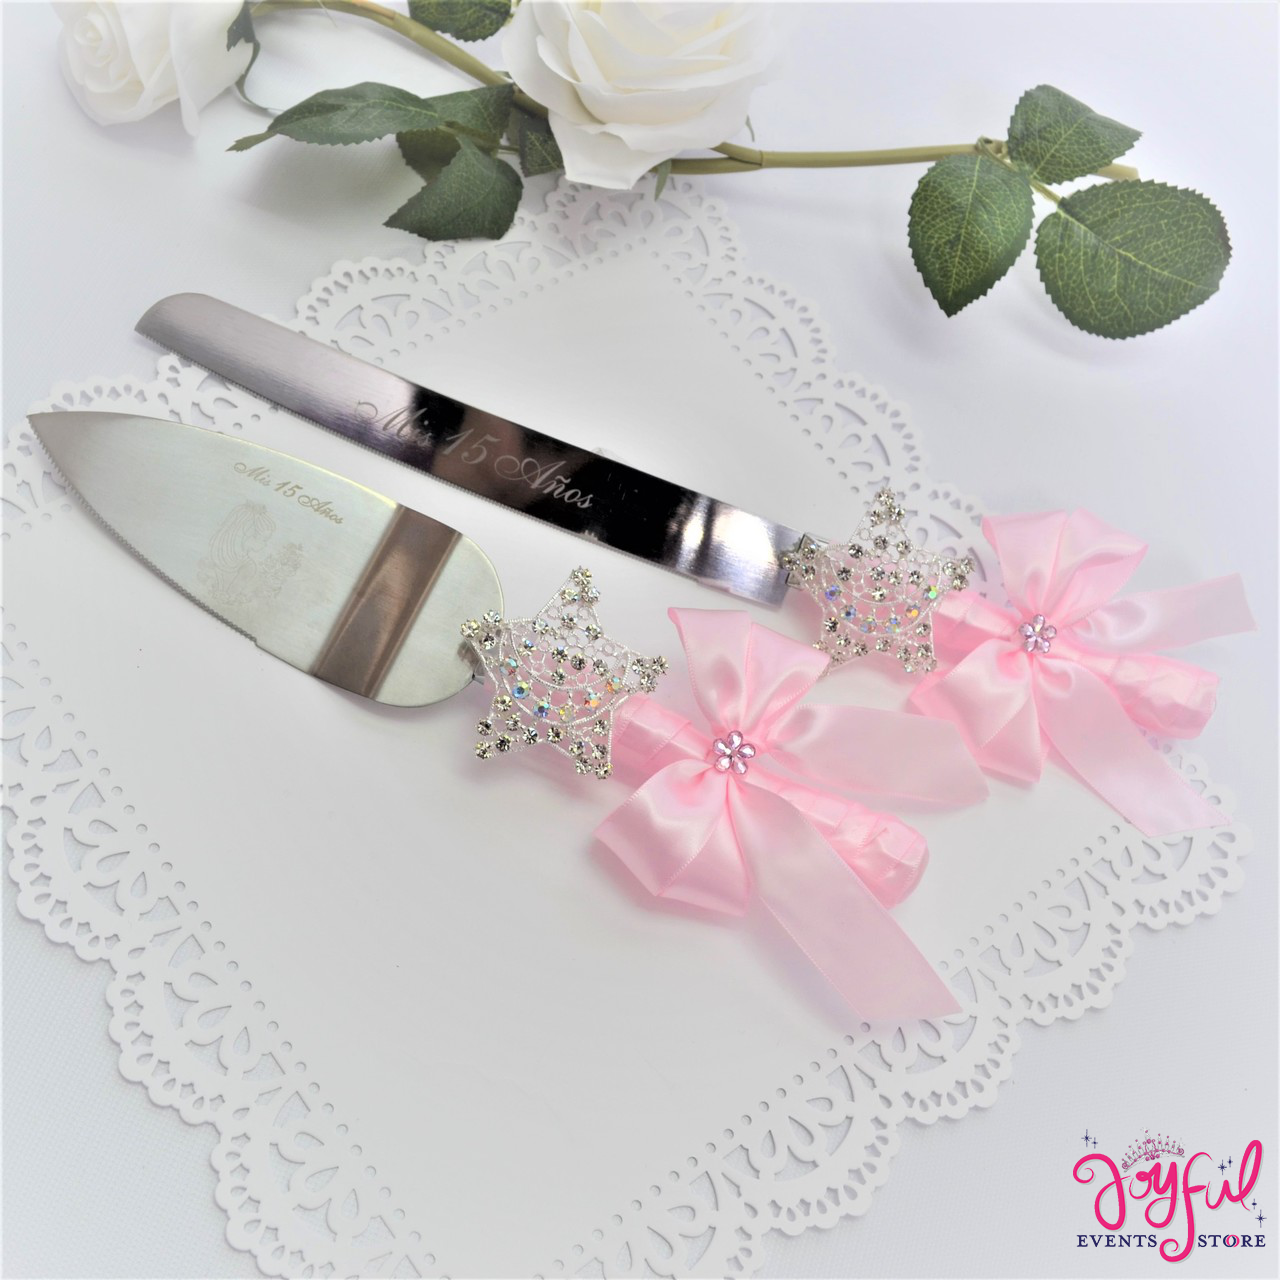 Wedding cake knives sets Coral wedding Cake cutting sets Coral and mint wedding Cake serving sets Mint green and coral wedding